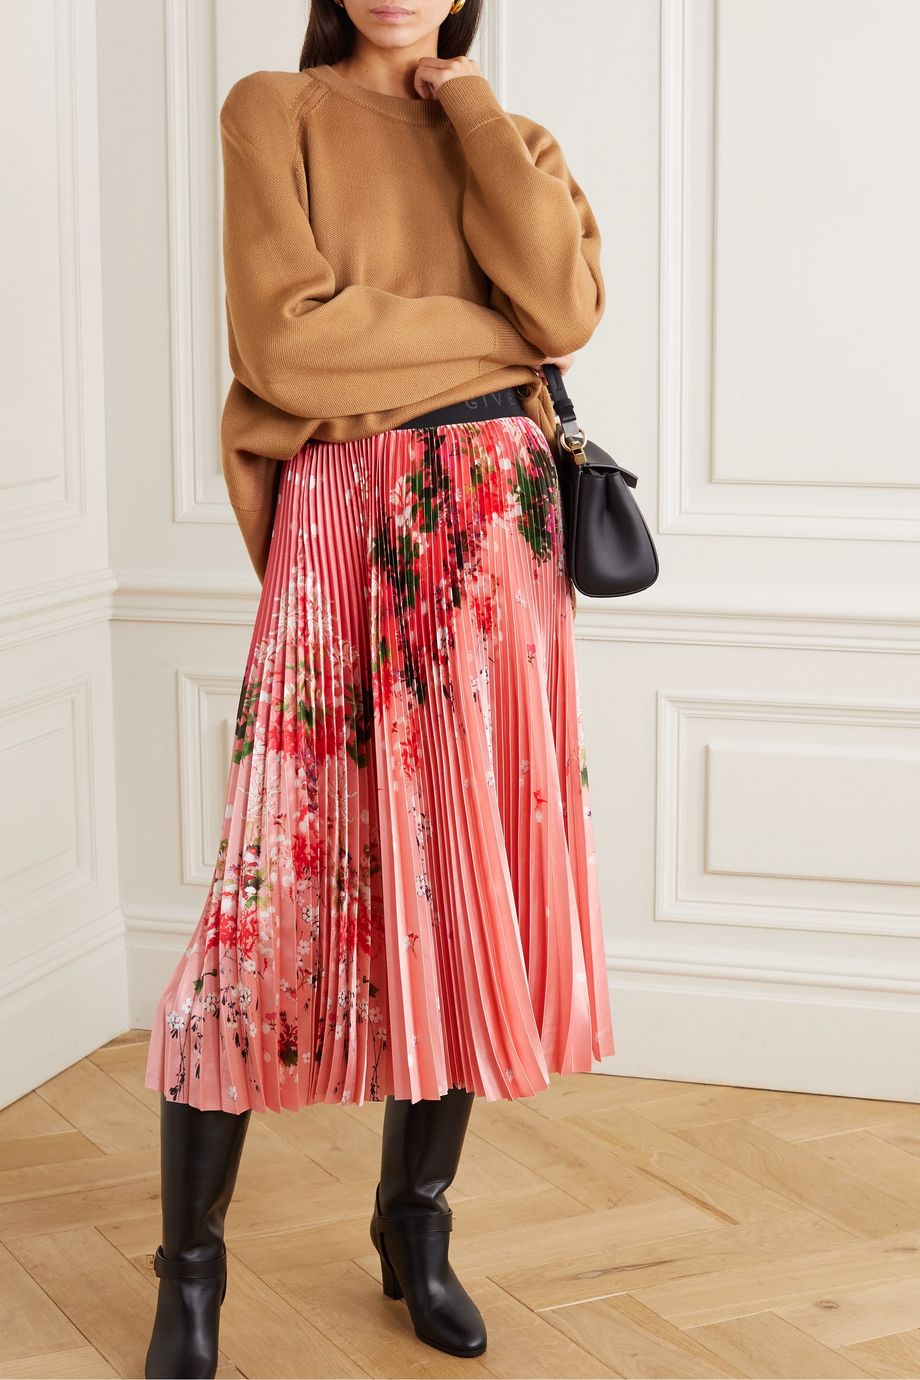 Givenchy Pleated floral-print satin midi skirt